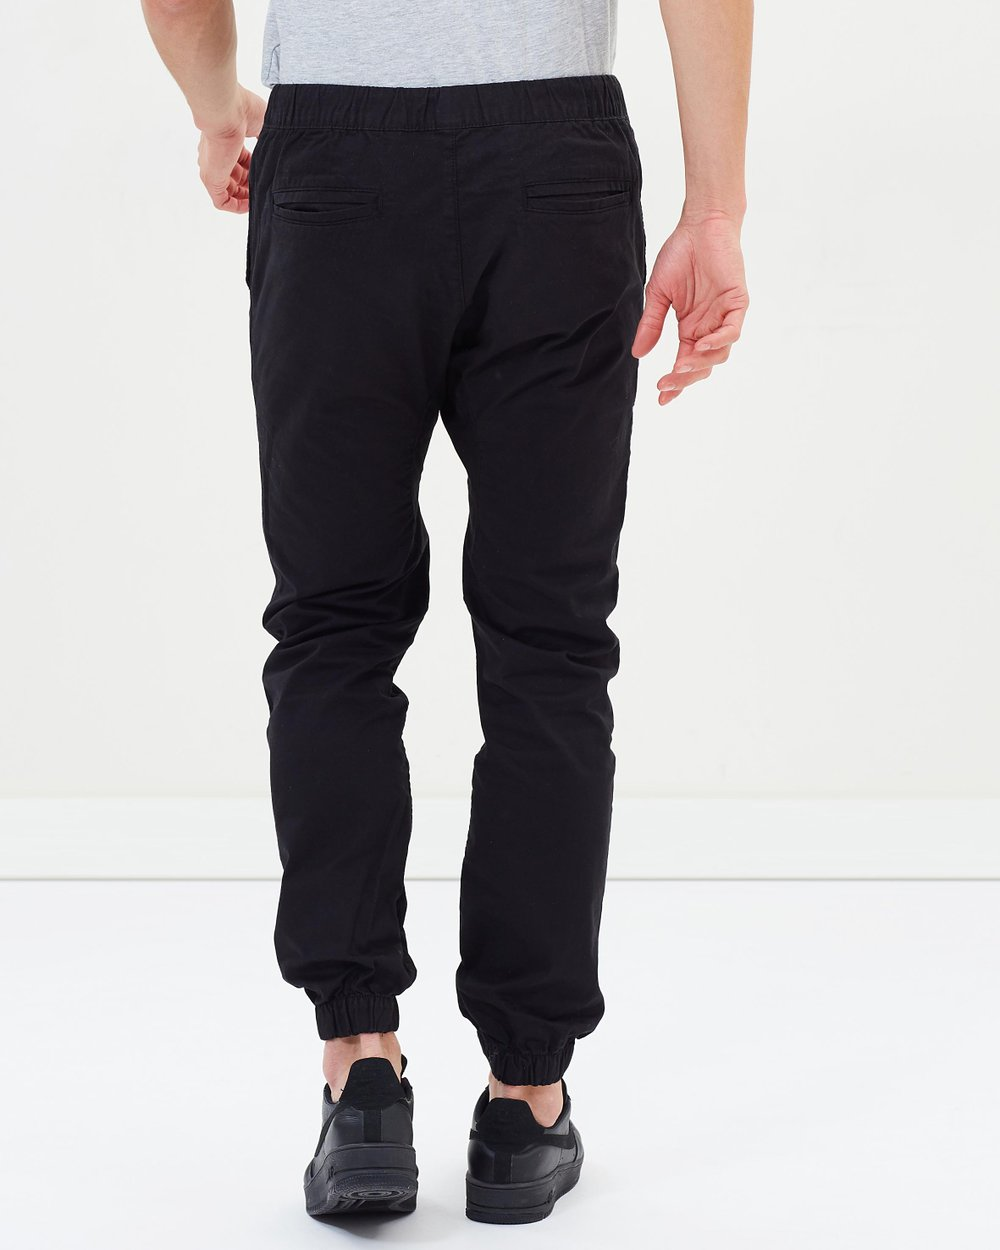 d7649fa12a41 Drake Cuffed Pants by Cotton On Online | THE ICONIC | Australia